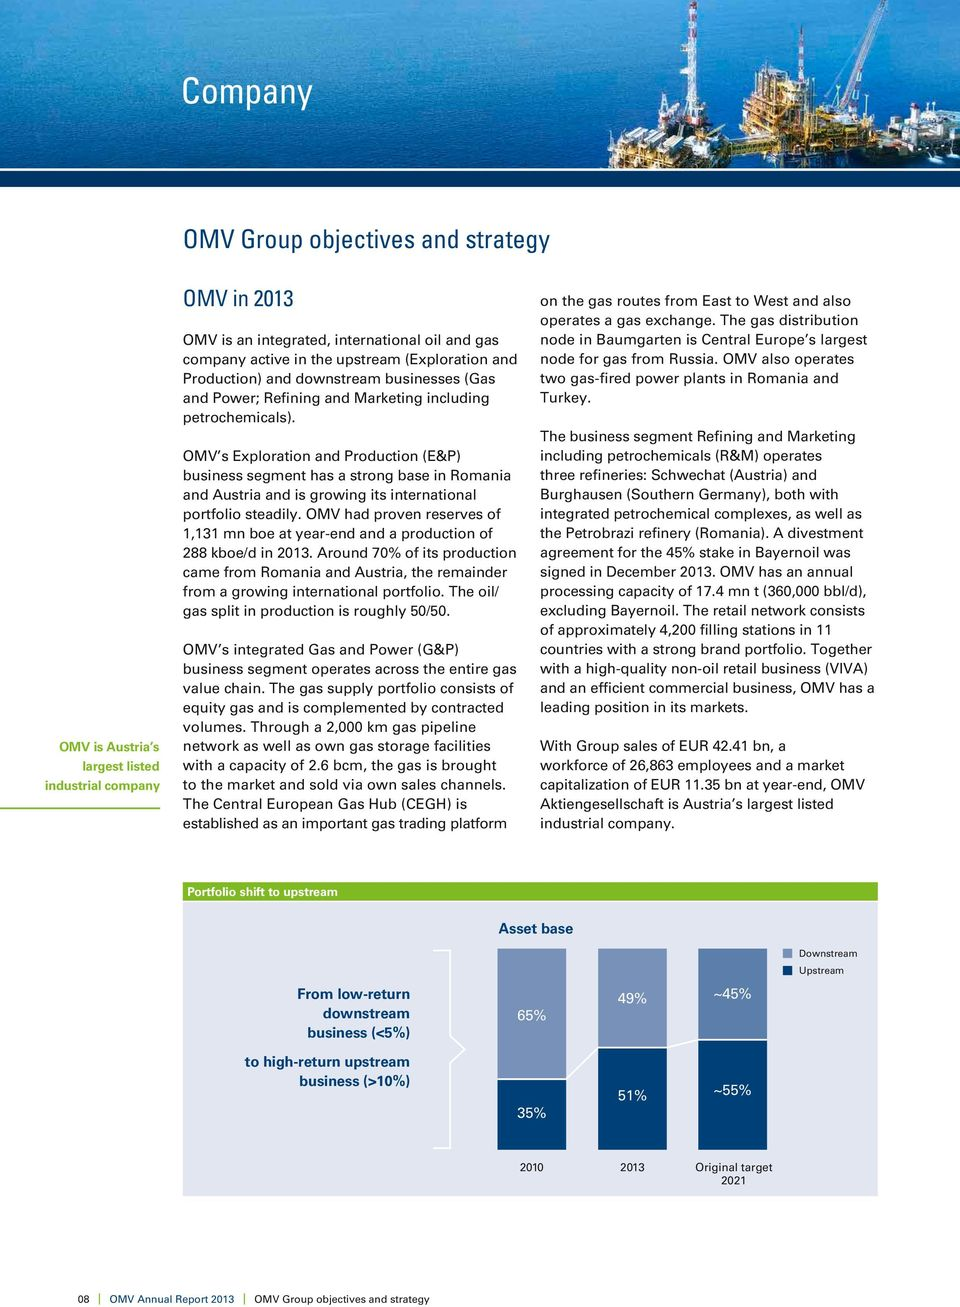 OMV had proven reserves of,3 mn boe at year-end and a production of 288 kboe/d in. Around 70% of its production came from Romania and Austria, the remainder from a growing international portfolio.